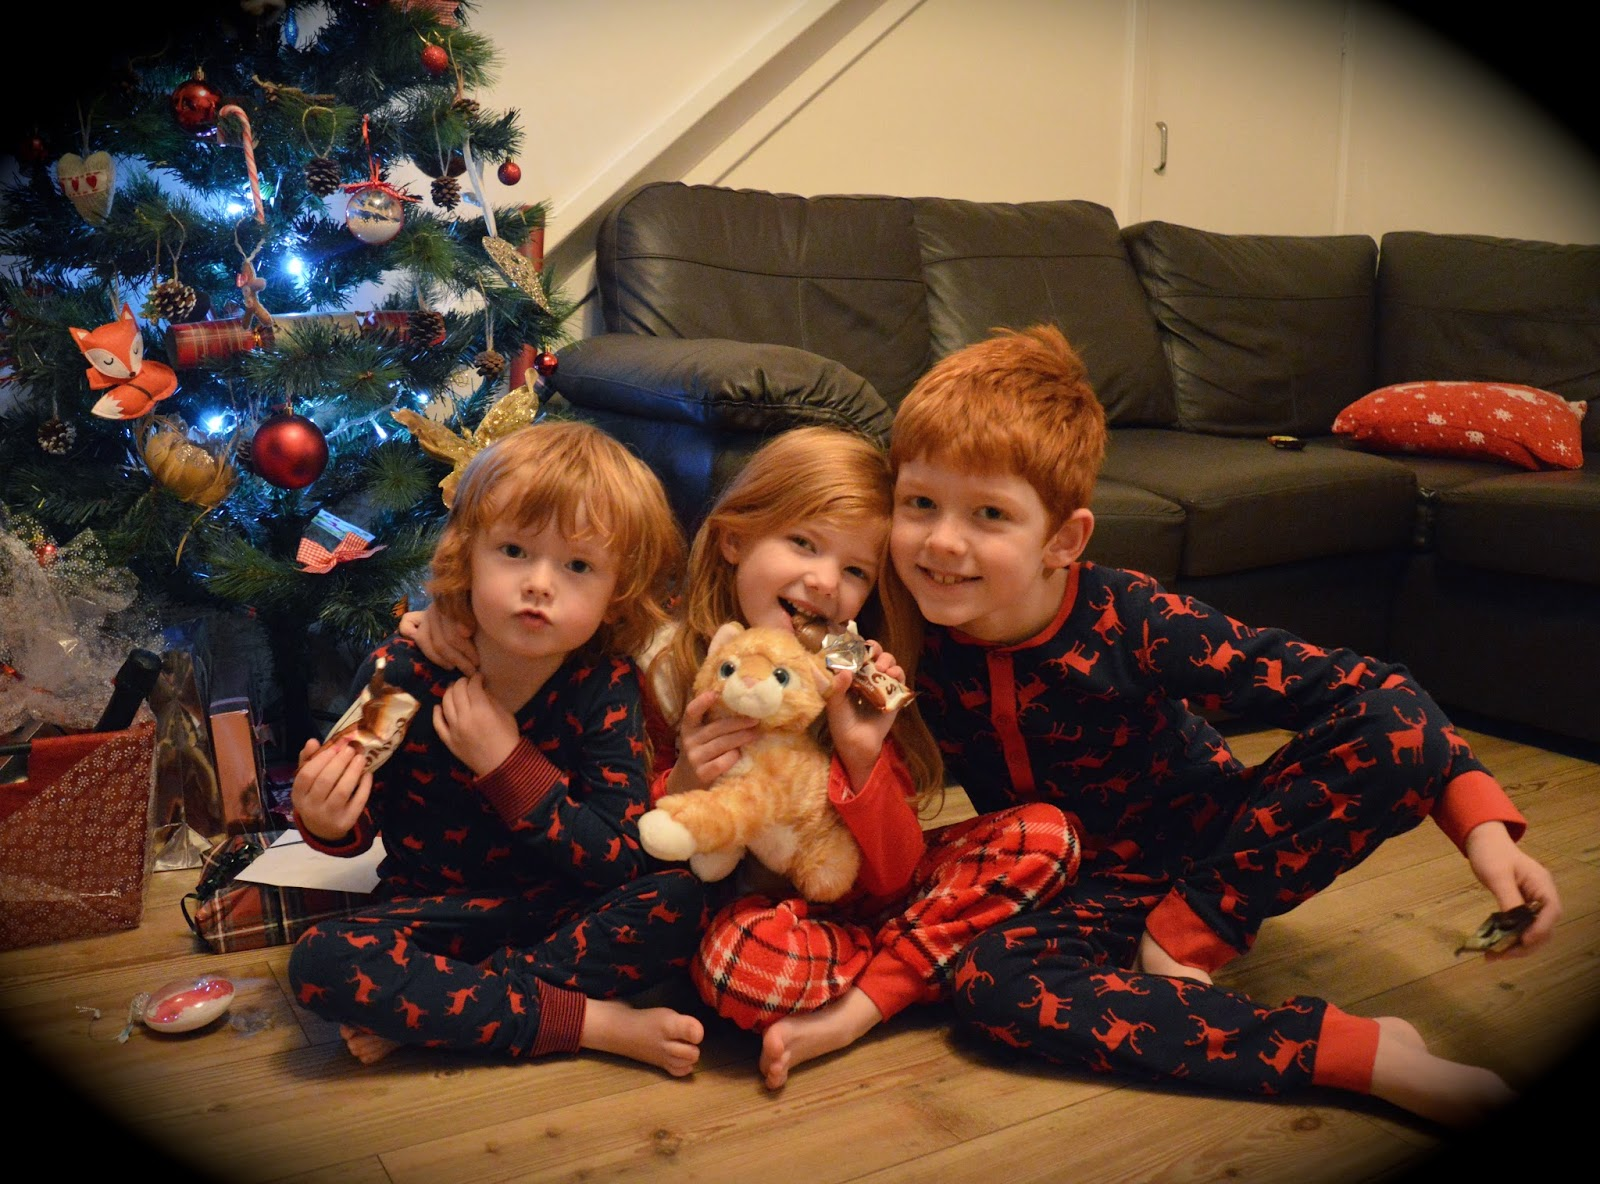 My Top 5 tips for the perfect Christmas movie night   North East Family Fun